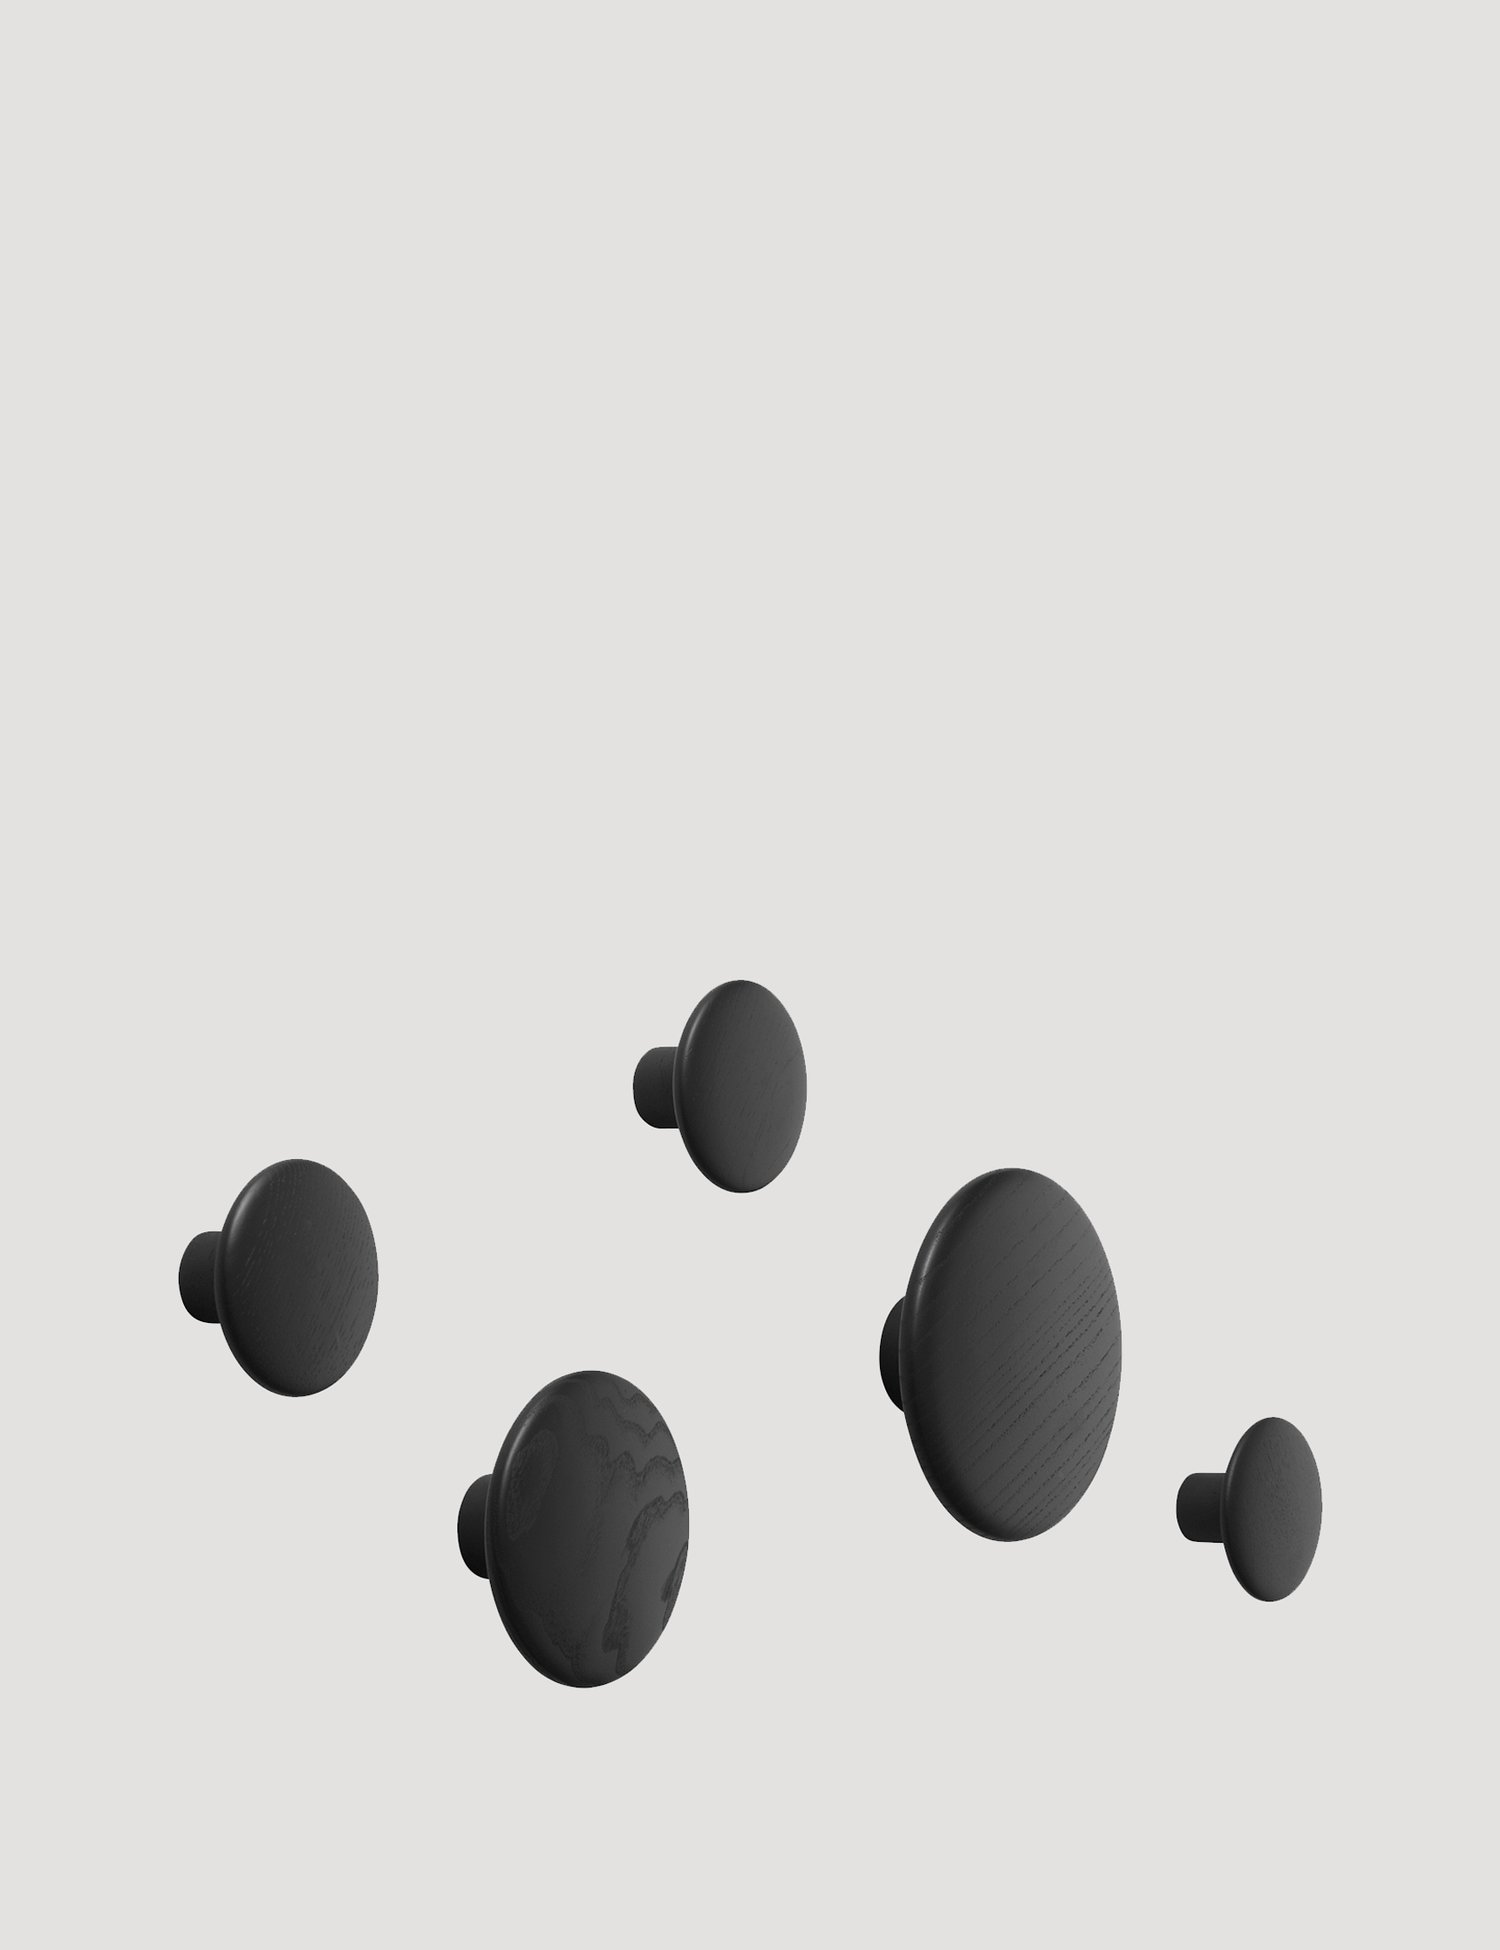 The Dots, Set of 5, Black